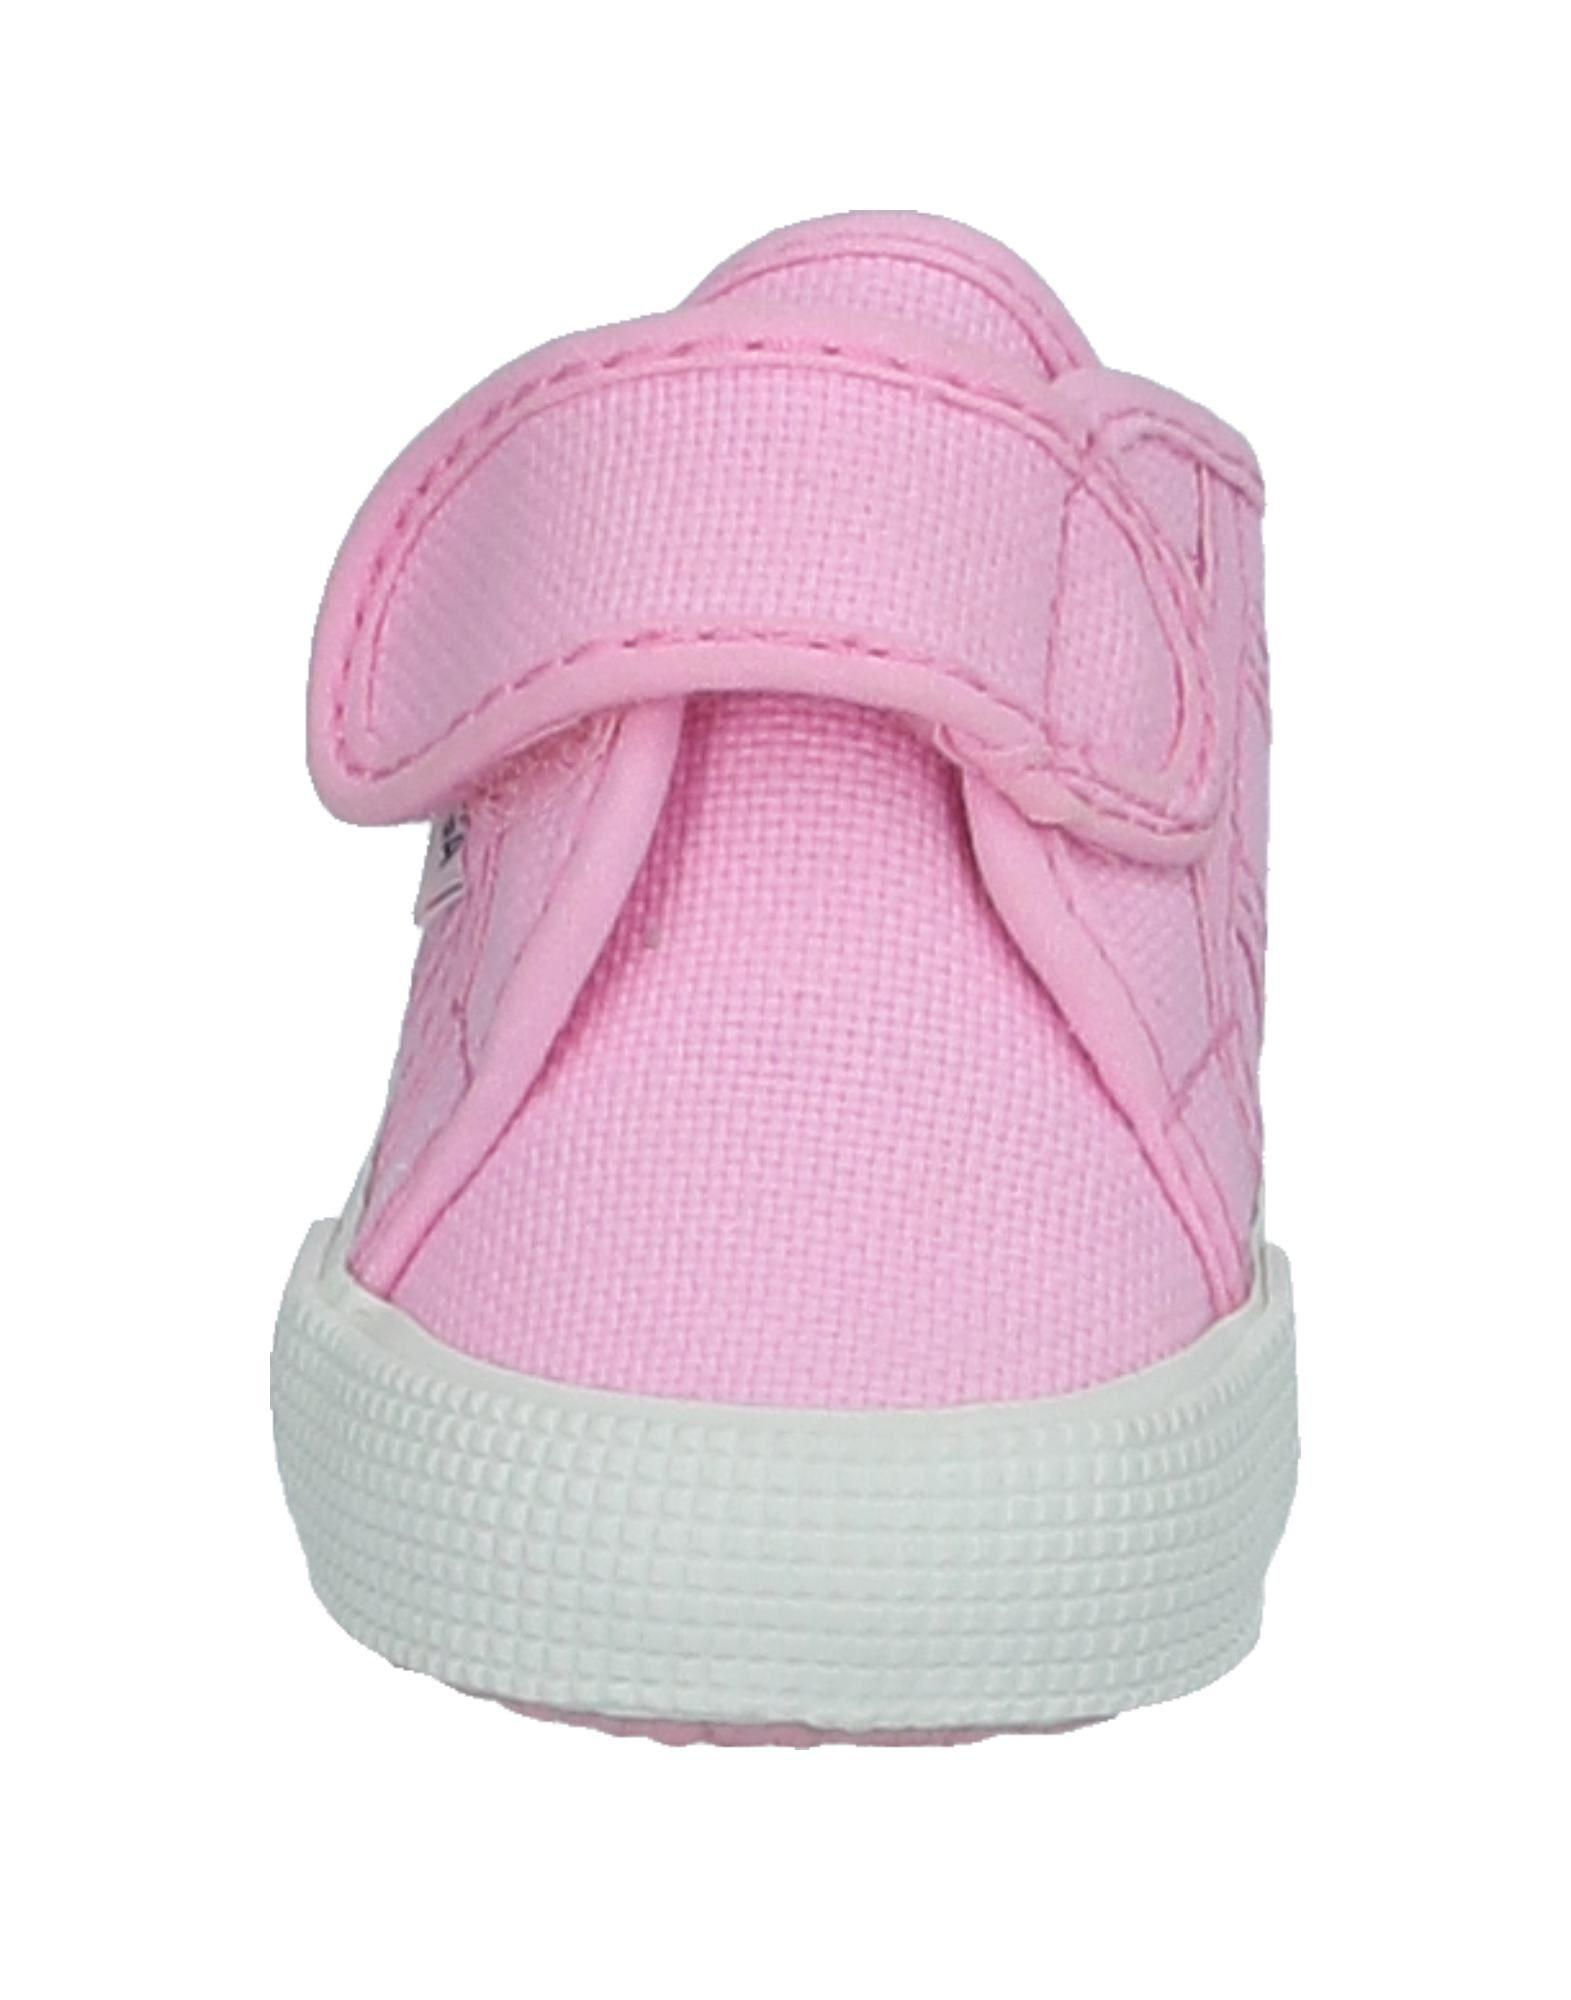 Superga Canvas Low-tops & Sneakers in Pink